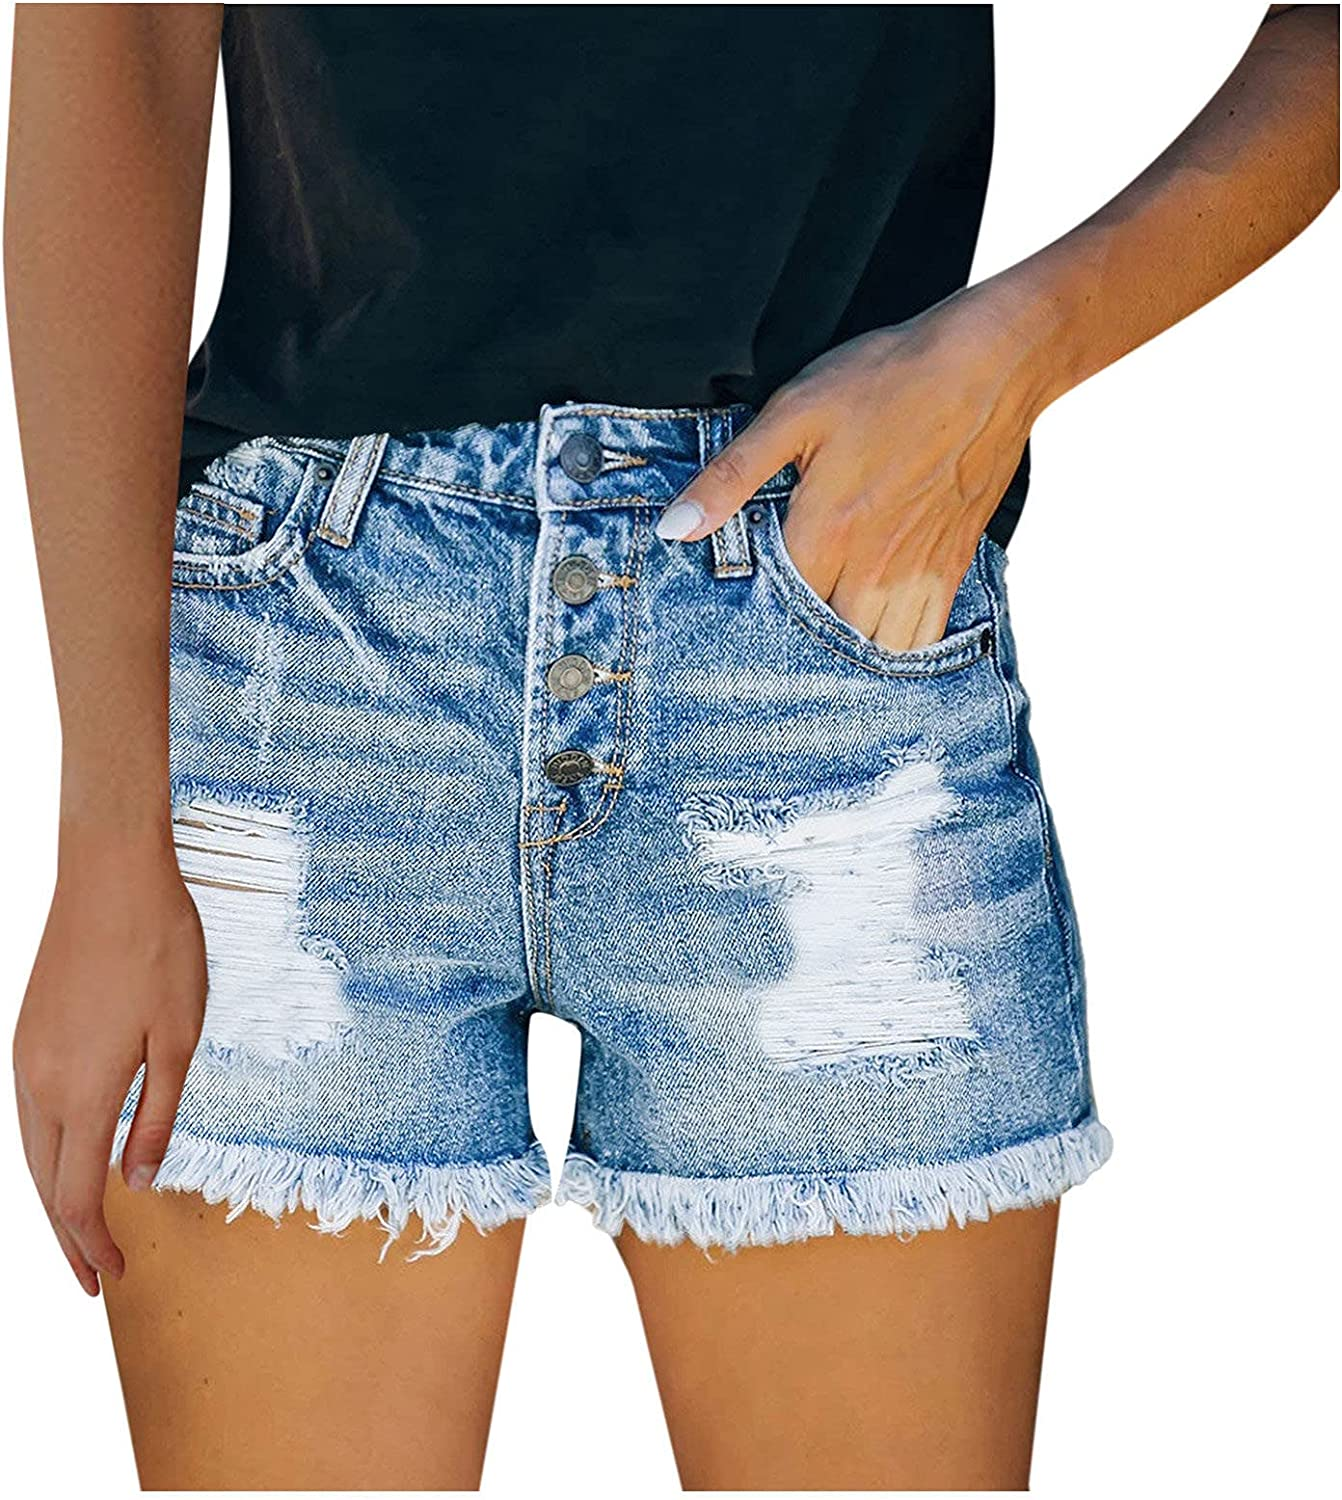 Rubysam Women's High Waisted Rolled Hem Distressed Jeans Ripped Denim Shorts with Pocket